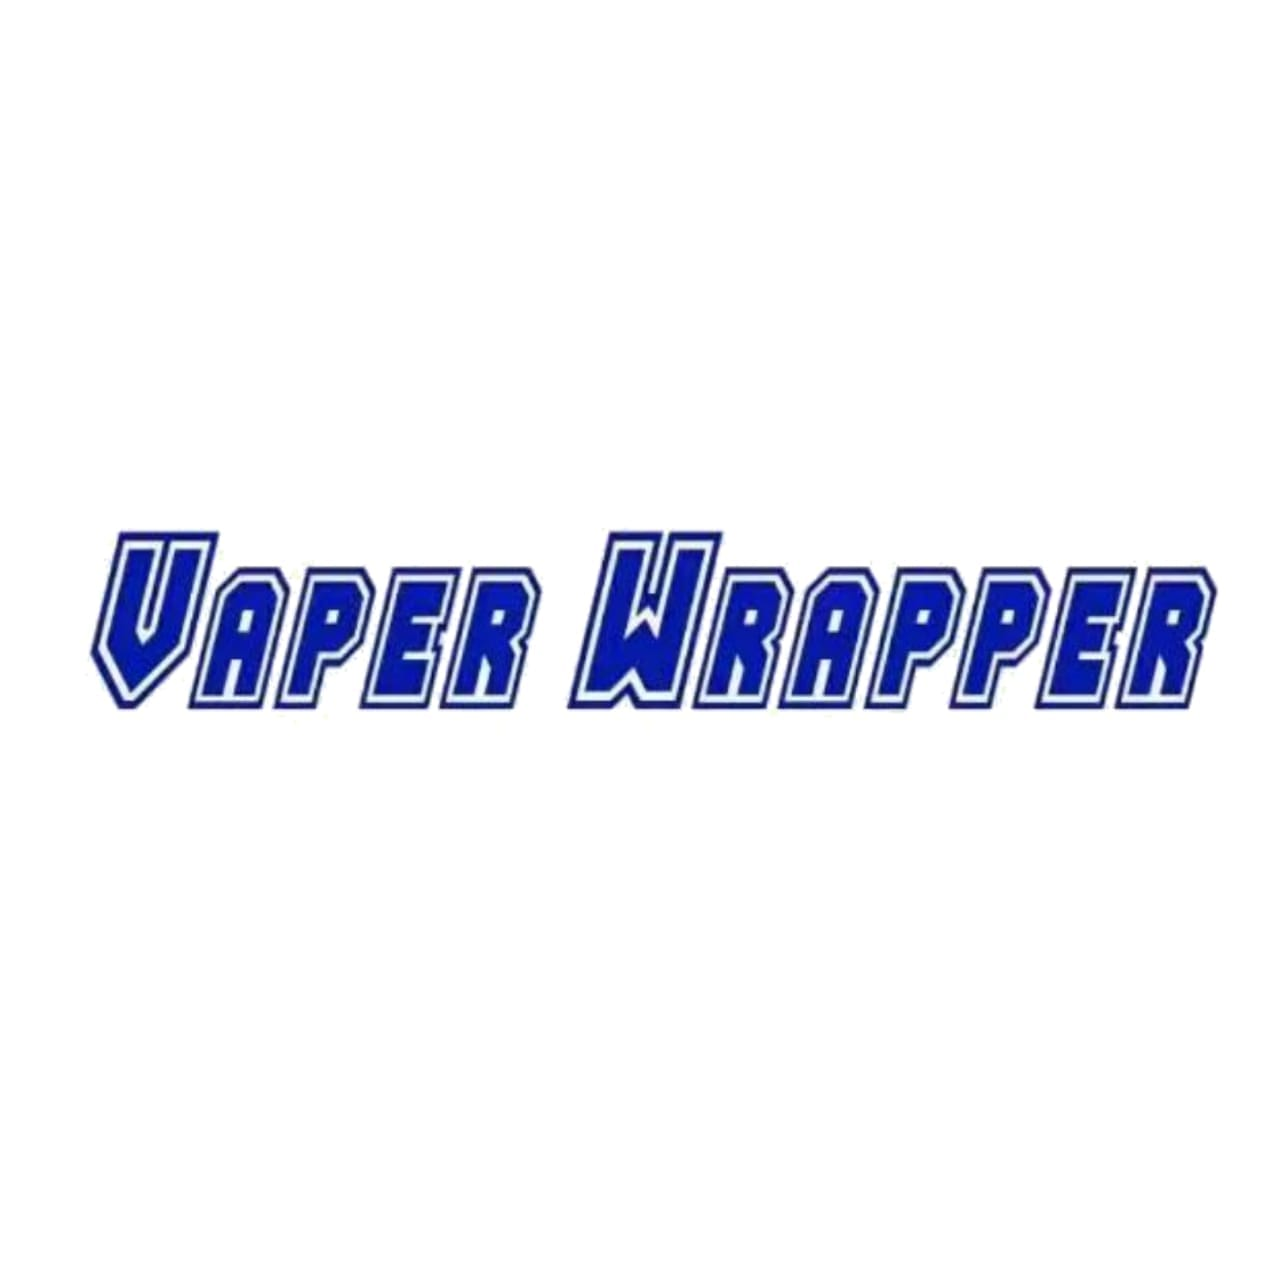 VAPER WRAPPER